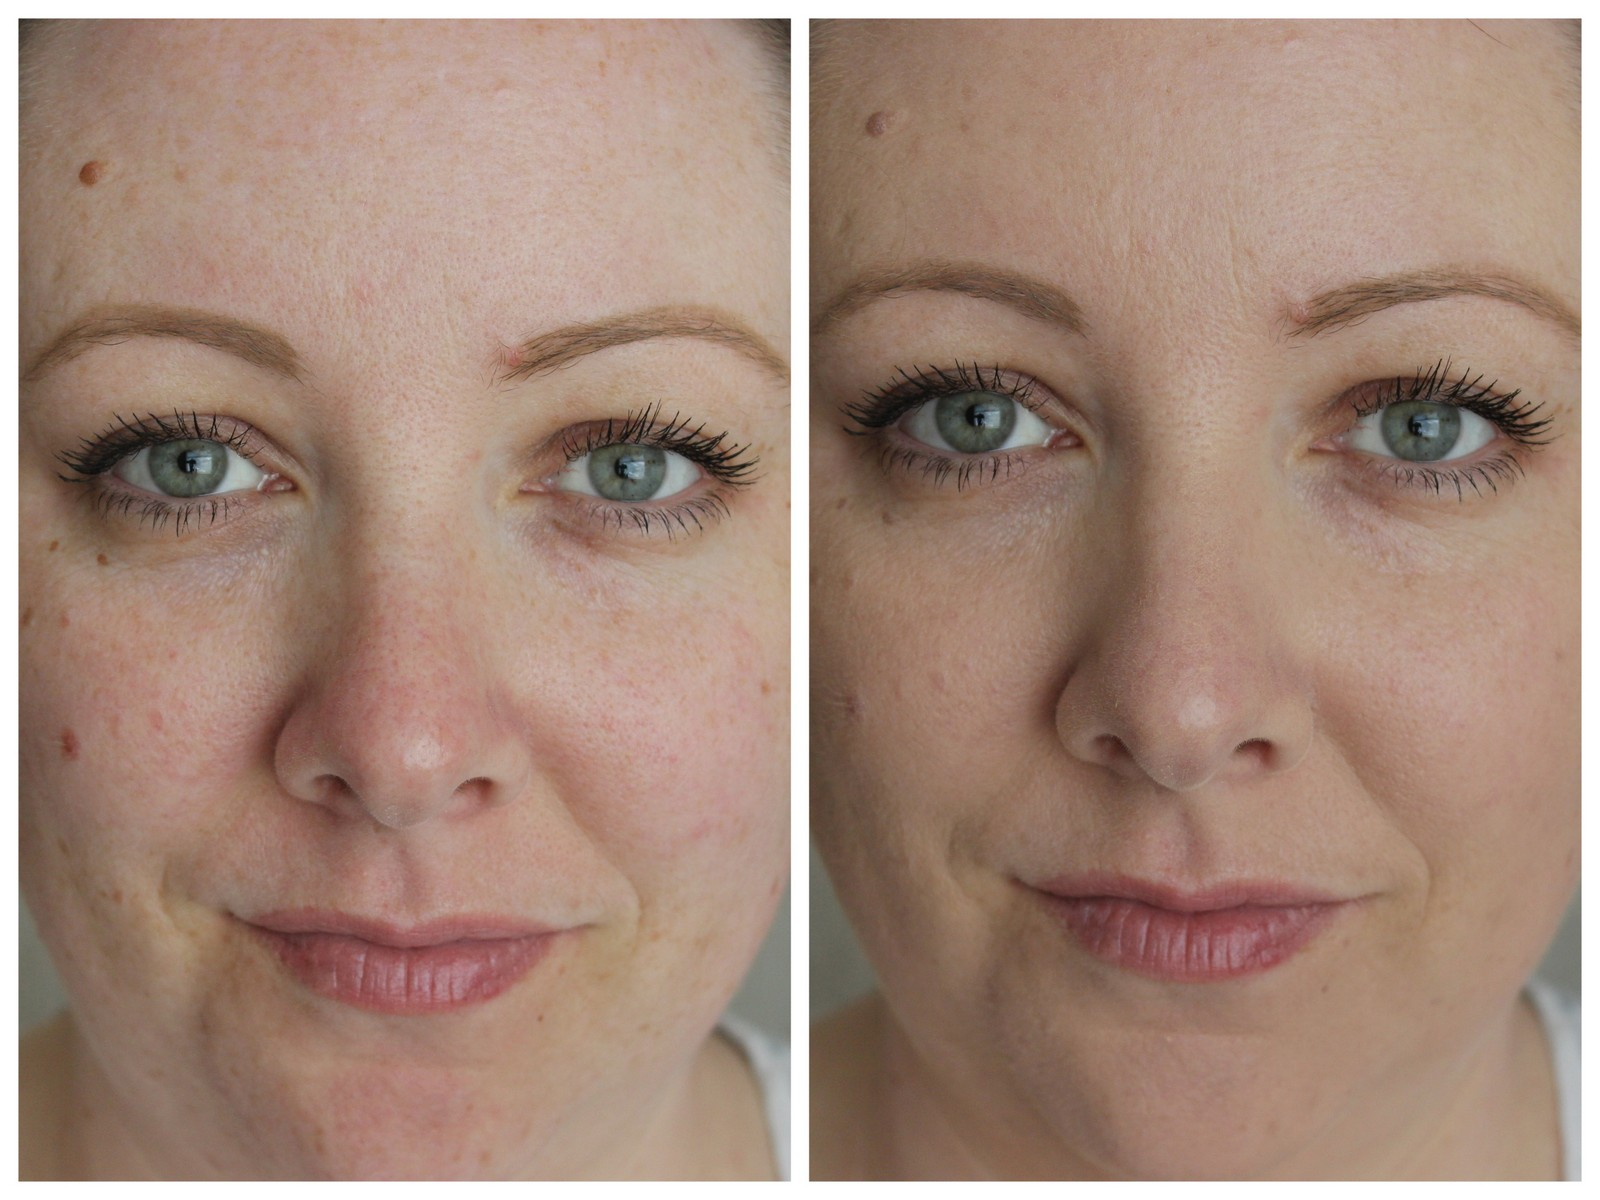 Rimmel Match Perfection Foundation Review Before After Photos Loreal True Perfecting Powder Get Away With The Second Lightest Shade 103 Ivory But For Anyone Paler Than Me Youll Have To Look Elsewhere Something Thatll You